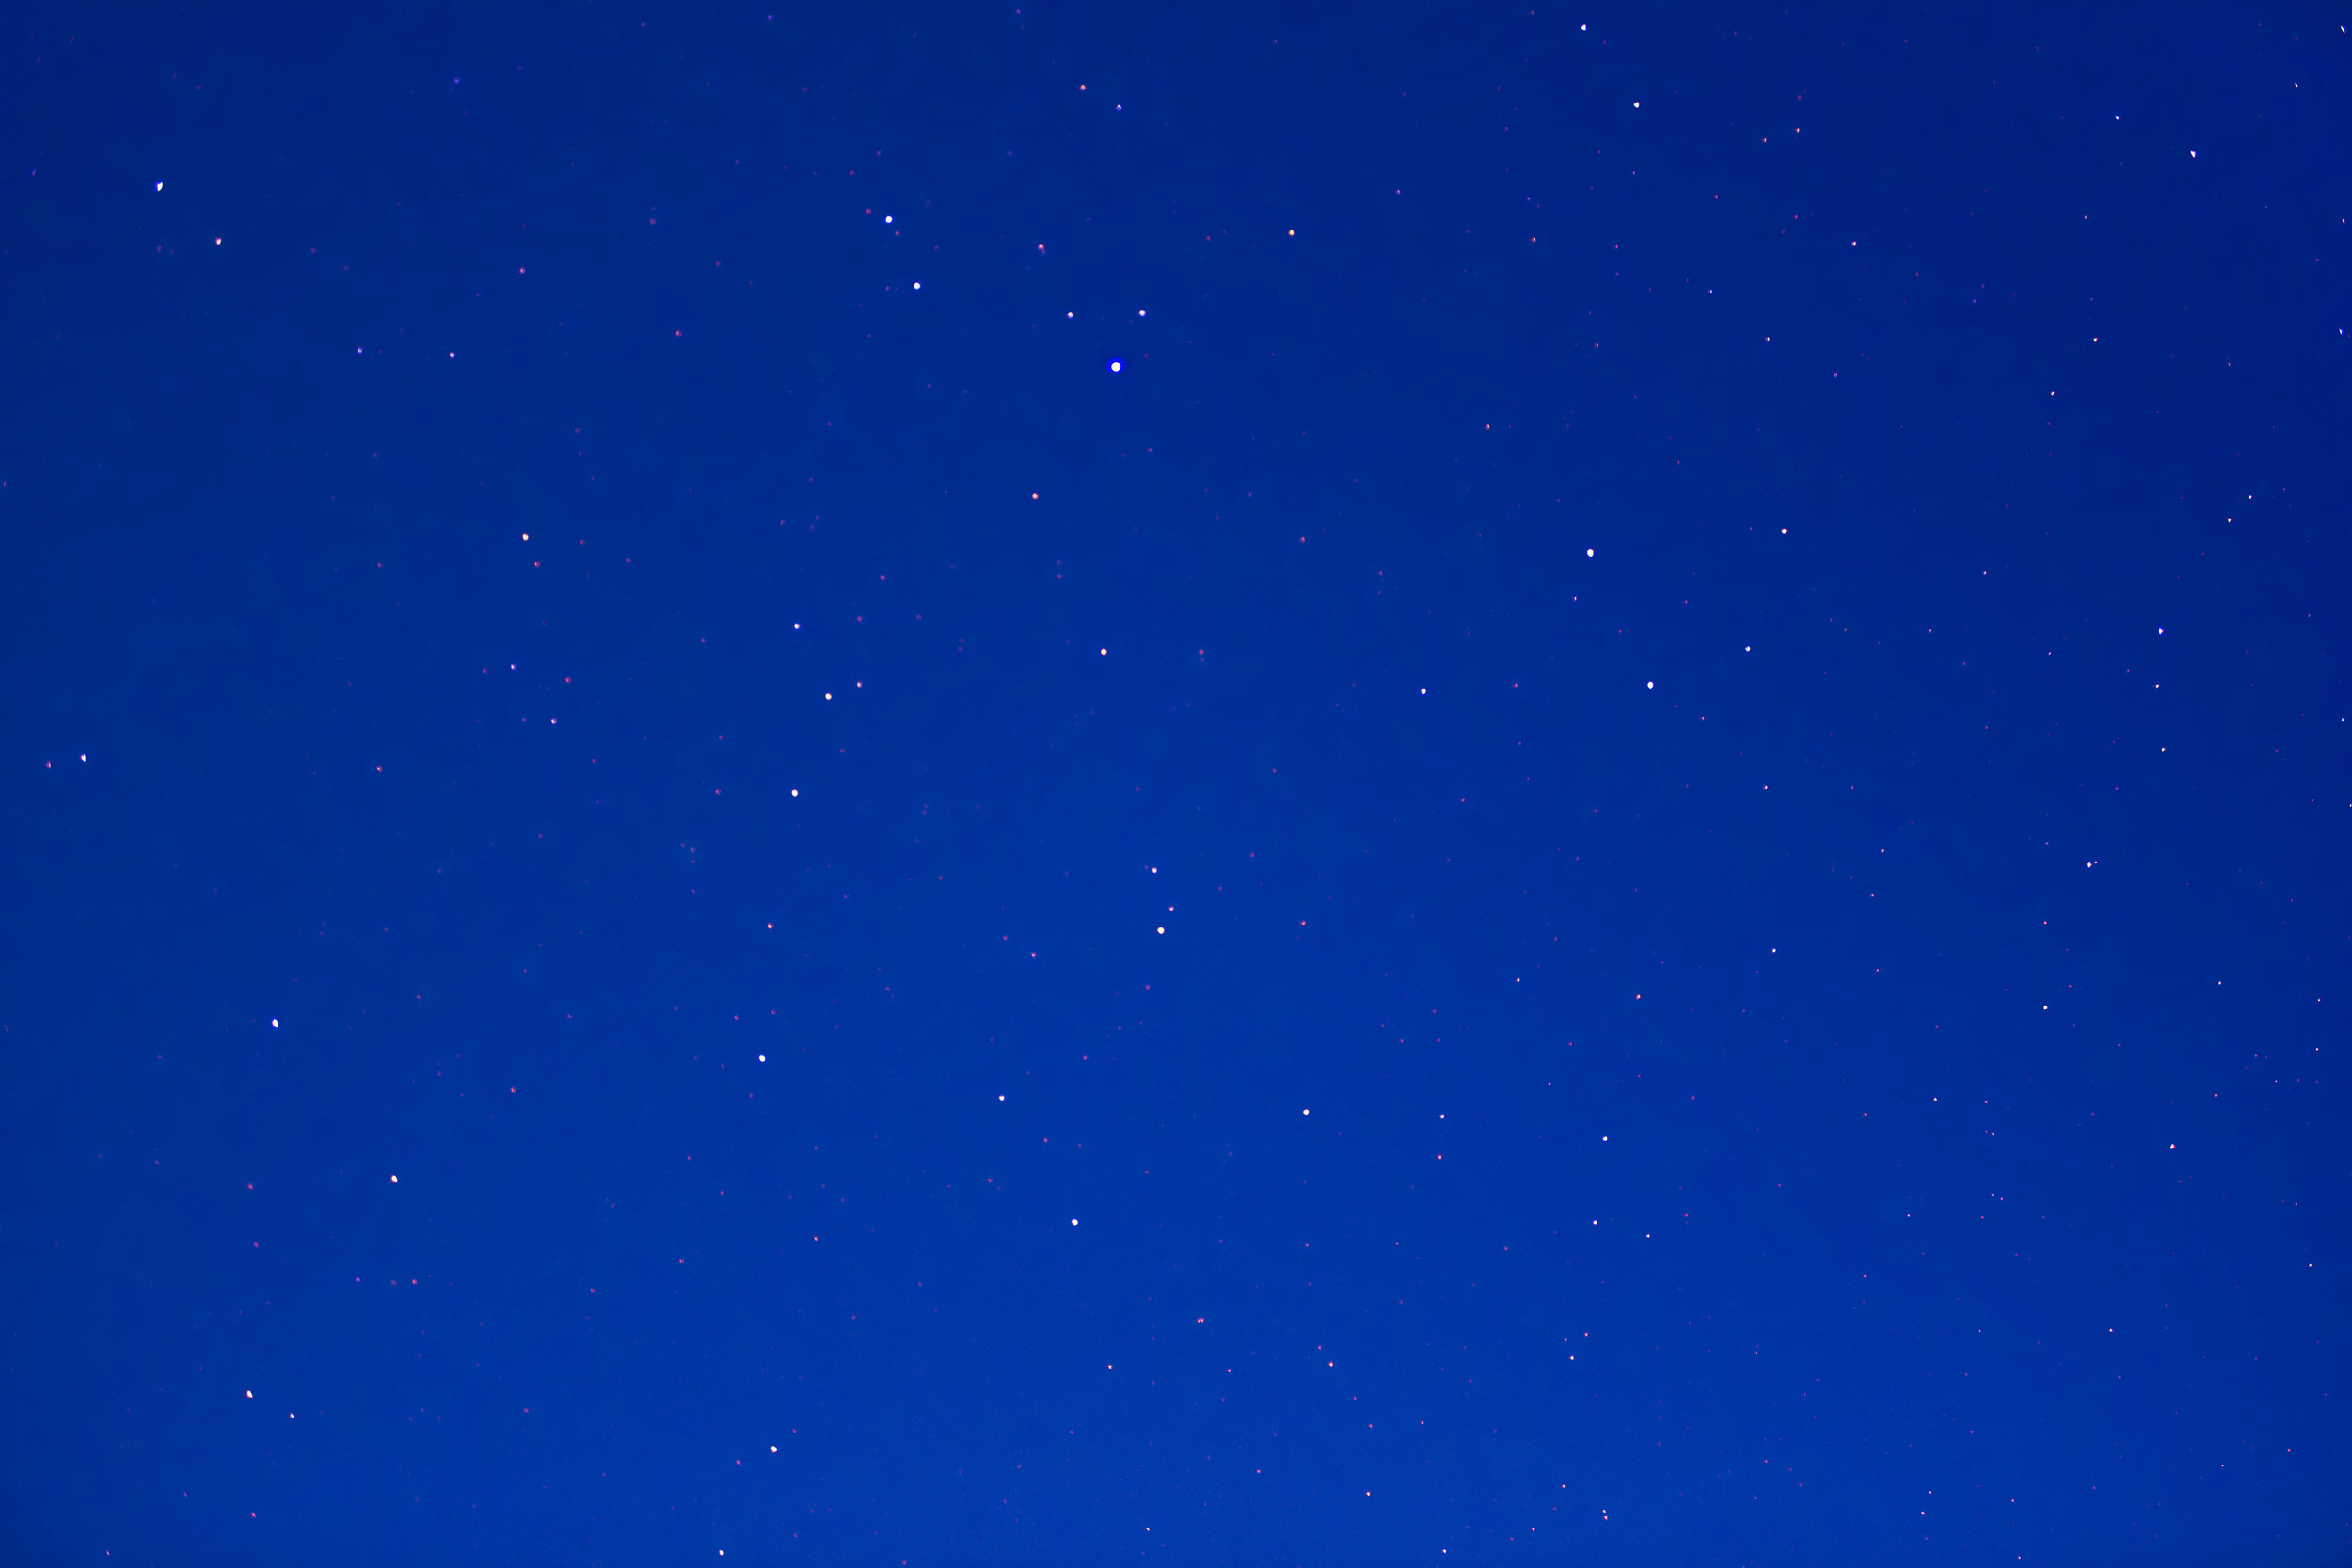 wisconsin-wildcat-mountain-state-park-clear-sky-with-stars.jpg